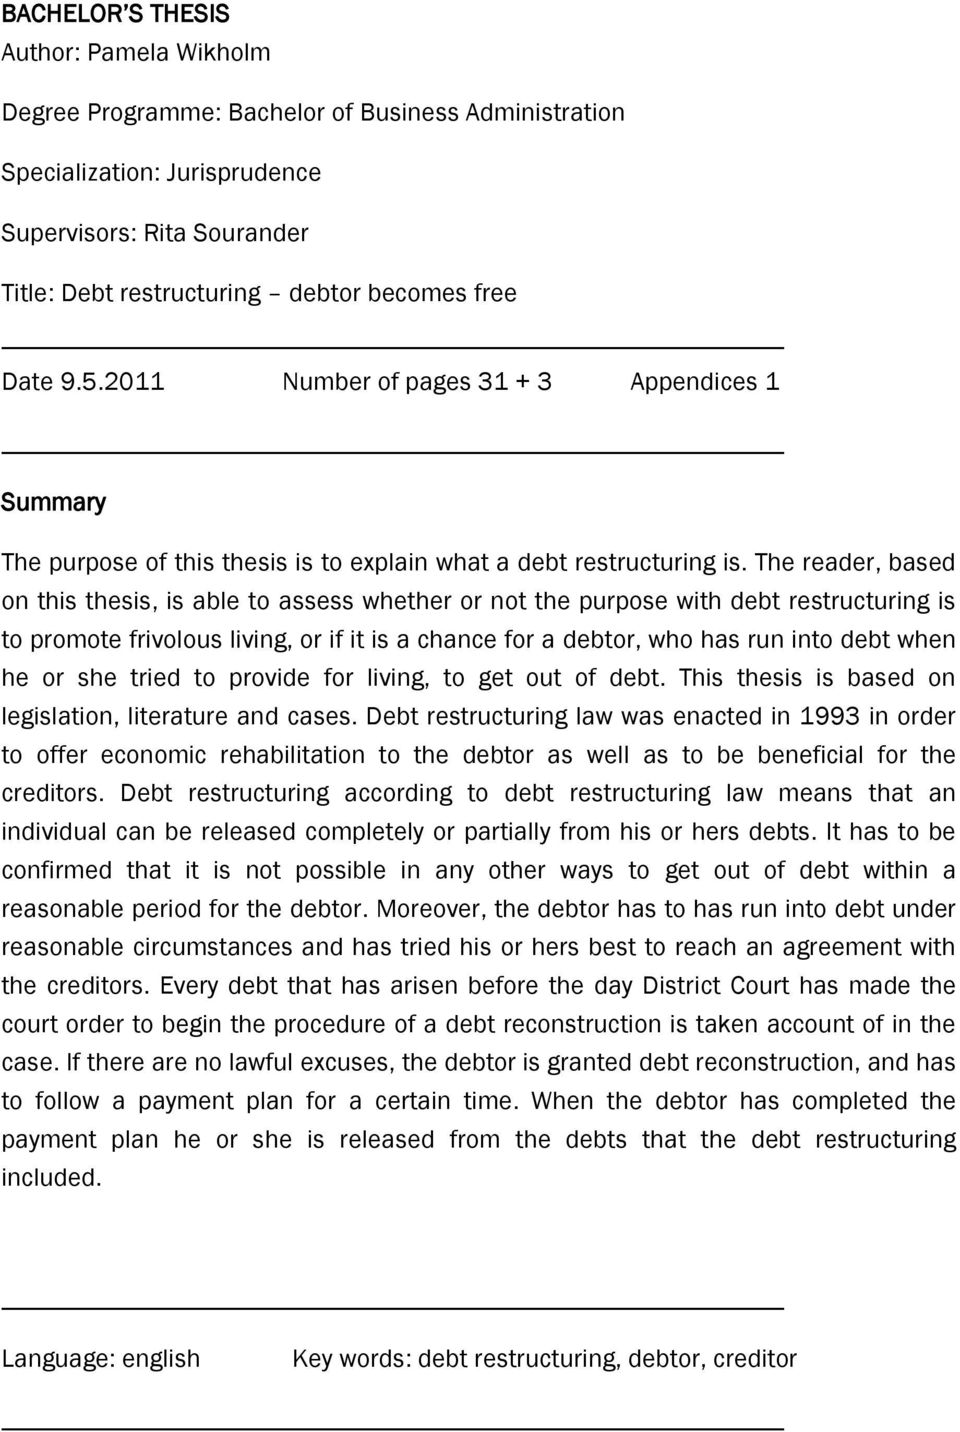 The reader, based on this thesis, is able to assess whether or not the purpose with debt restructuring is to promote frivolous living, or if it is a chance for a debtor, who has run into debt when he